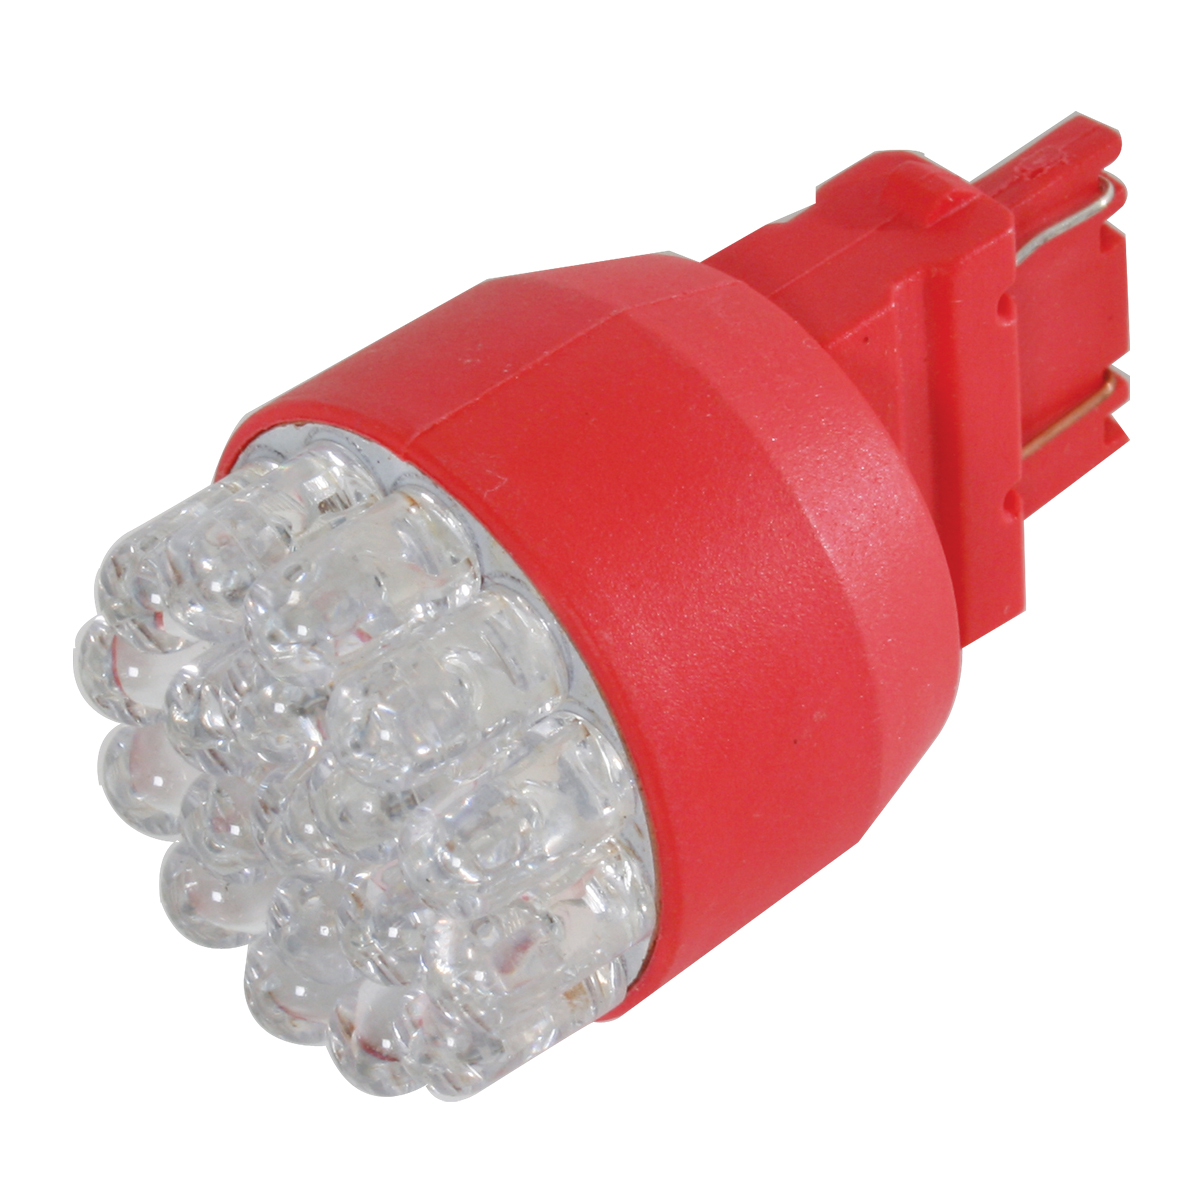 83991 Red 3157 Single Directional 19 LED Light Bulb